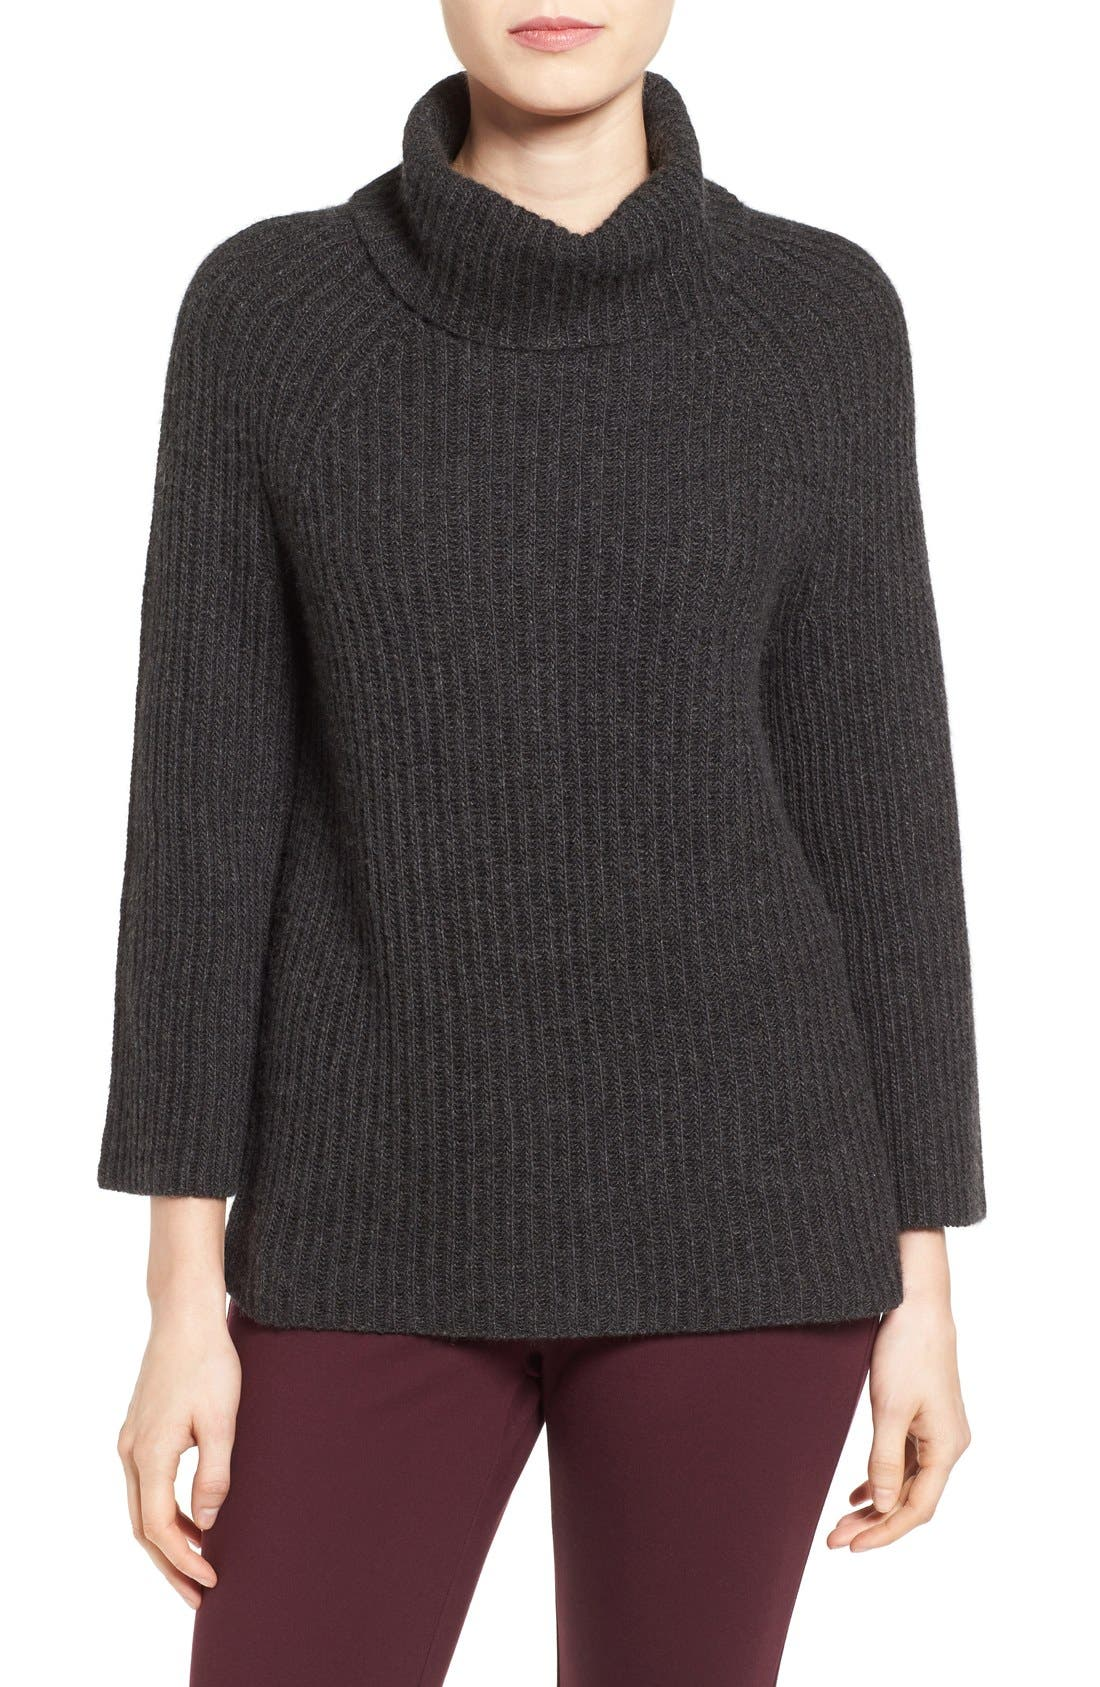 Ribbed Cashmere Turtleneck Sweater,                             Main thumbnail 1, color,                             021